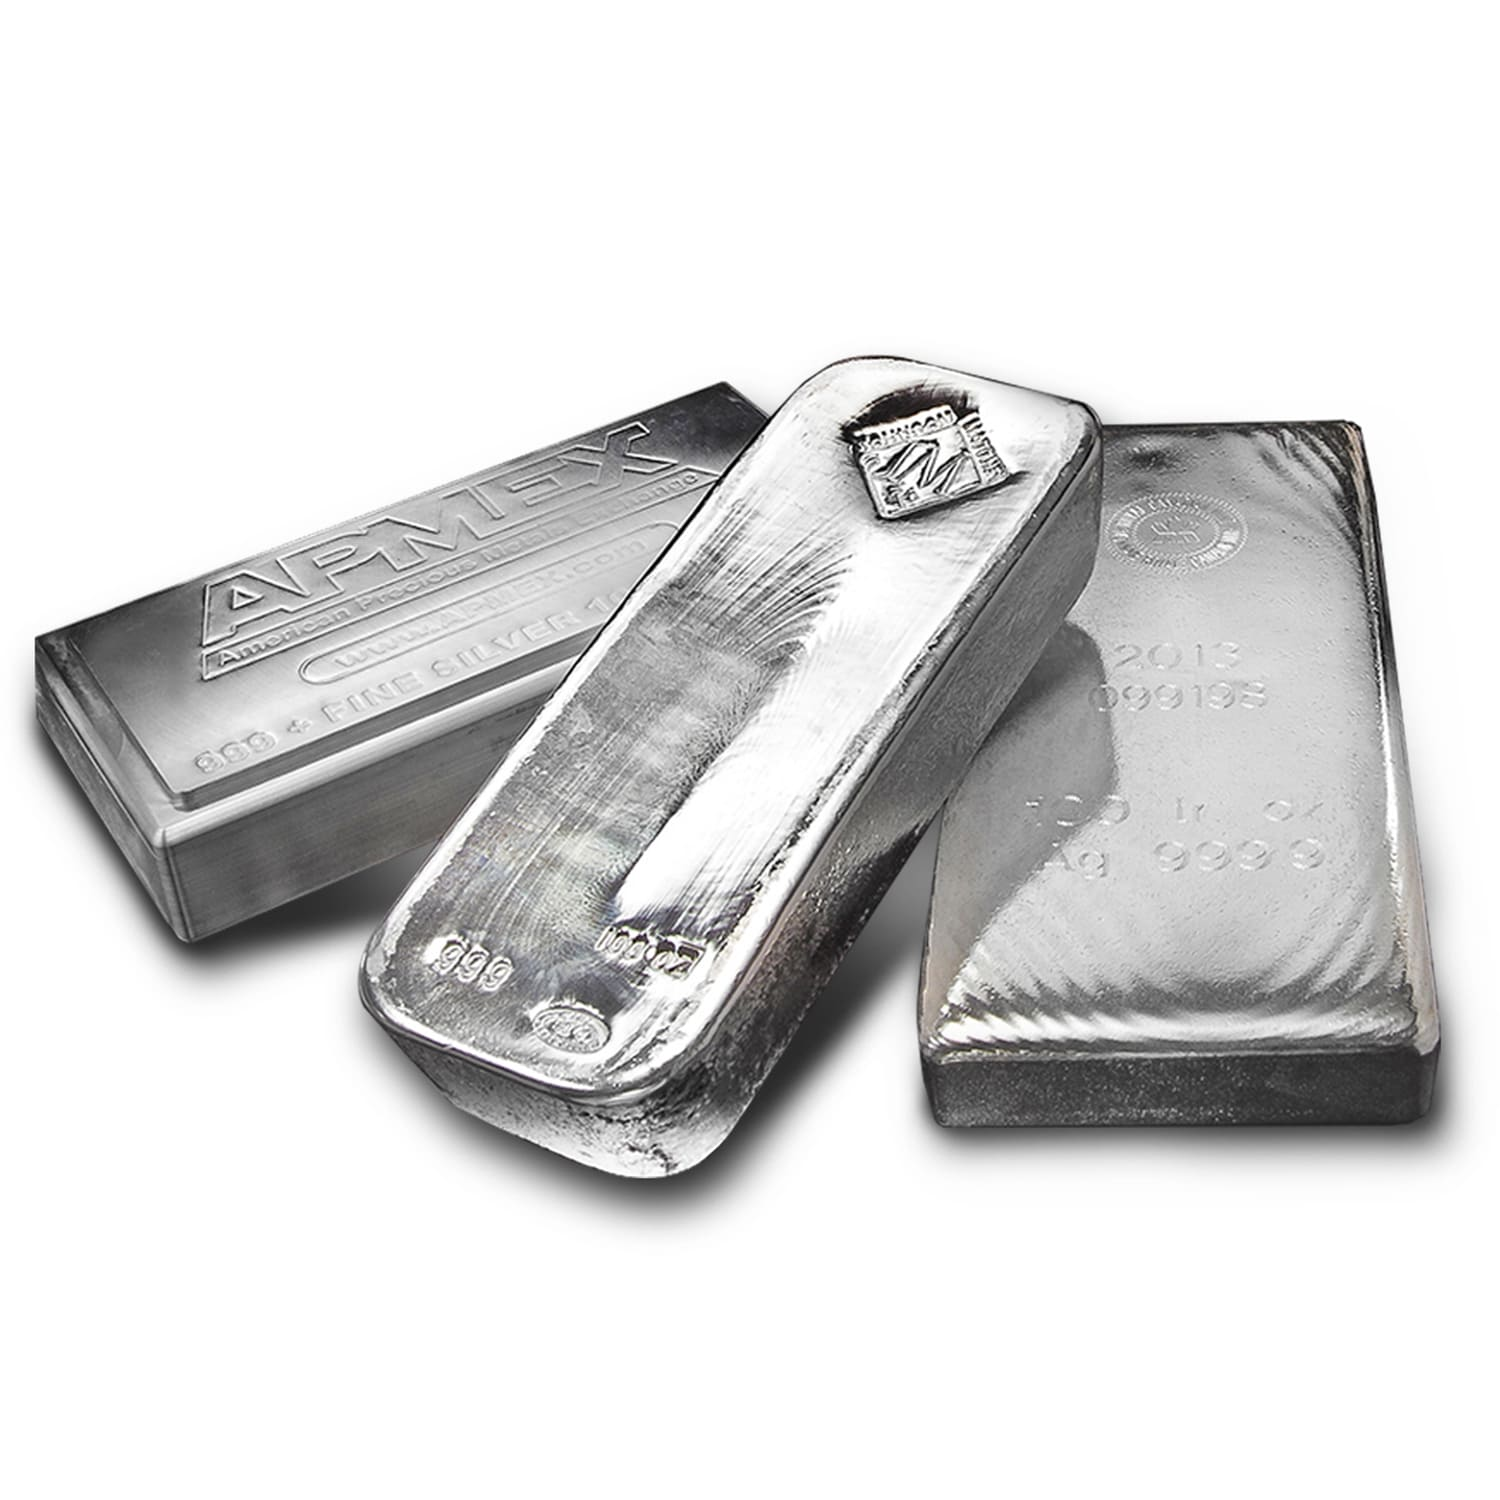 103.10 oz Silver Bars - Secondary Market